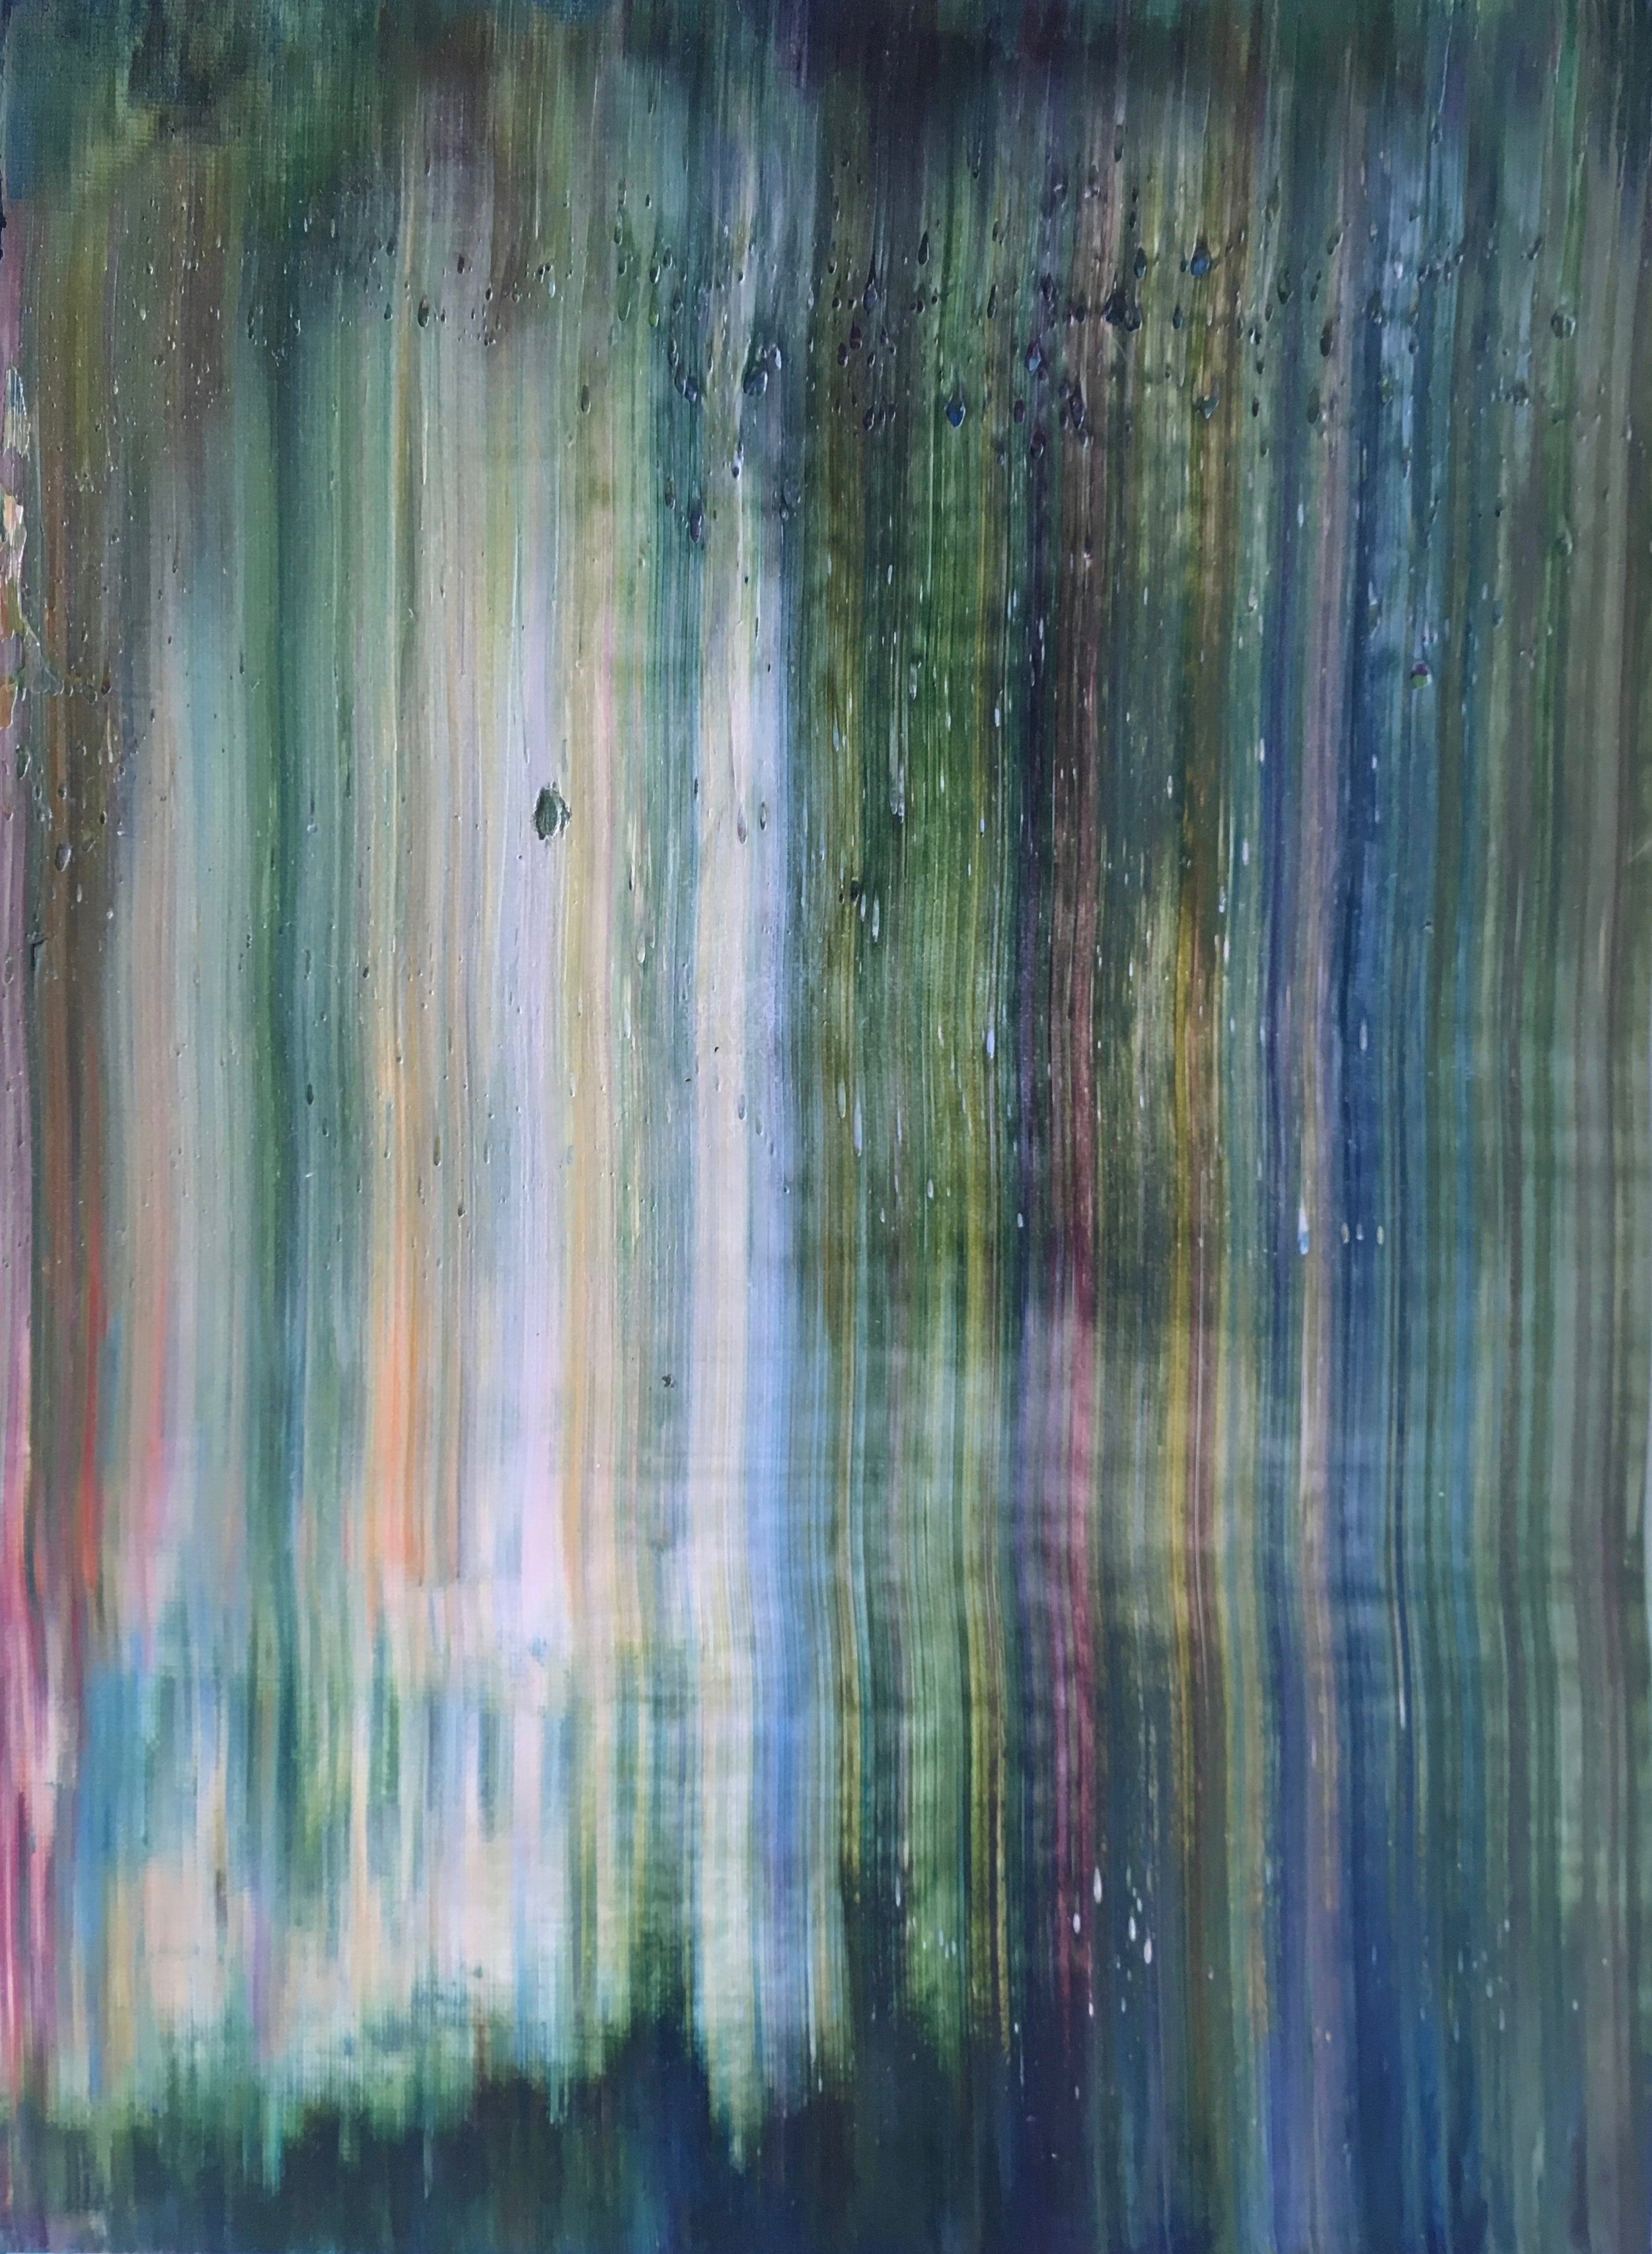 """""""Lush"""" is an original, abstract oil painting created by Los Angeles based artist, Laura Viapiano."""